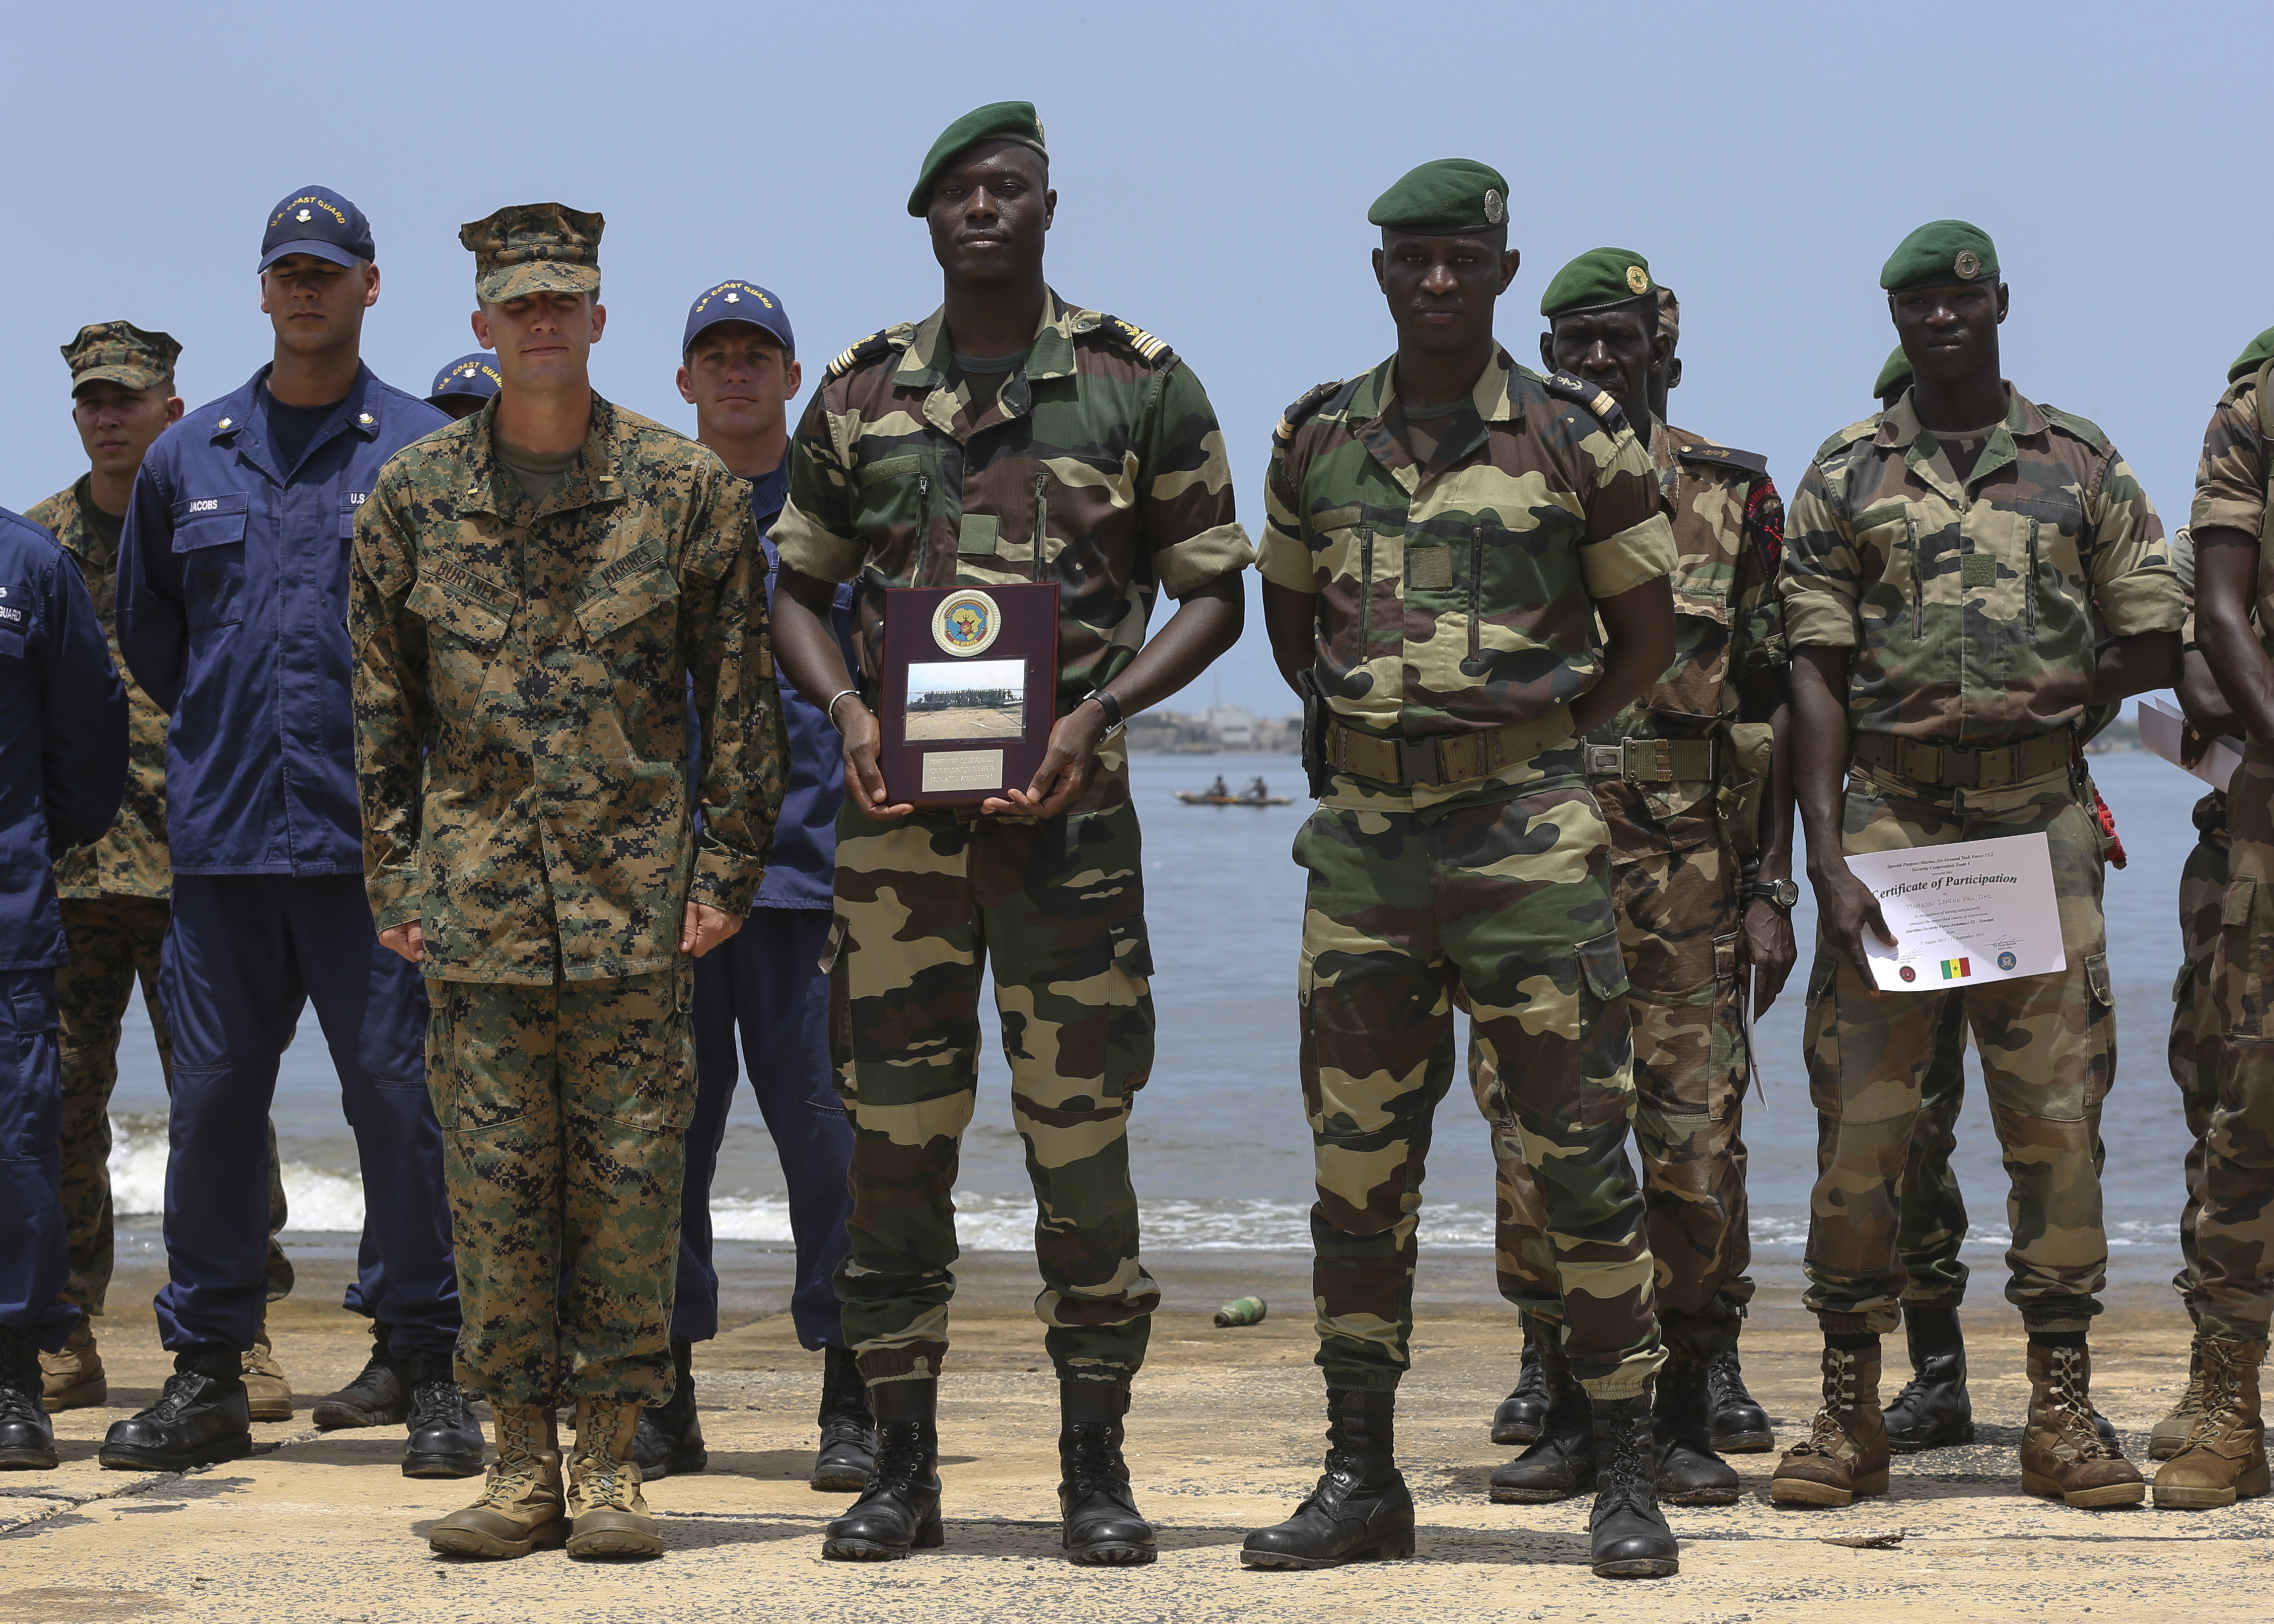 Second Lt. Aaron Burtner, security cooperation team leader, poses for a photo with Compagnie Fusilier de Marin Commandos after completing their final exercise with U.S. service members in Dakar, Senegal, September 17, 2015. The Marines and Coast Guardsmen with Special-Purpose Marine Air-Ground Task Force Crisis Response-Africa spent four weeks training the COFUMACO on basic infantry tactics and small-boat operations as a part of a Maritime Security Force Assistance mission to increase interoperability with Senegal's and strengthen the bond between the partner nations.  (U.S. Marine Corps photo by Cpl. Olivia McDonald/Released)